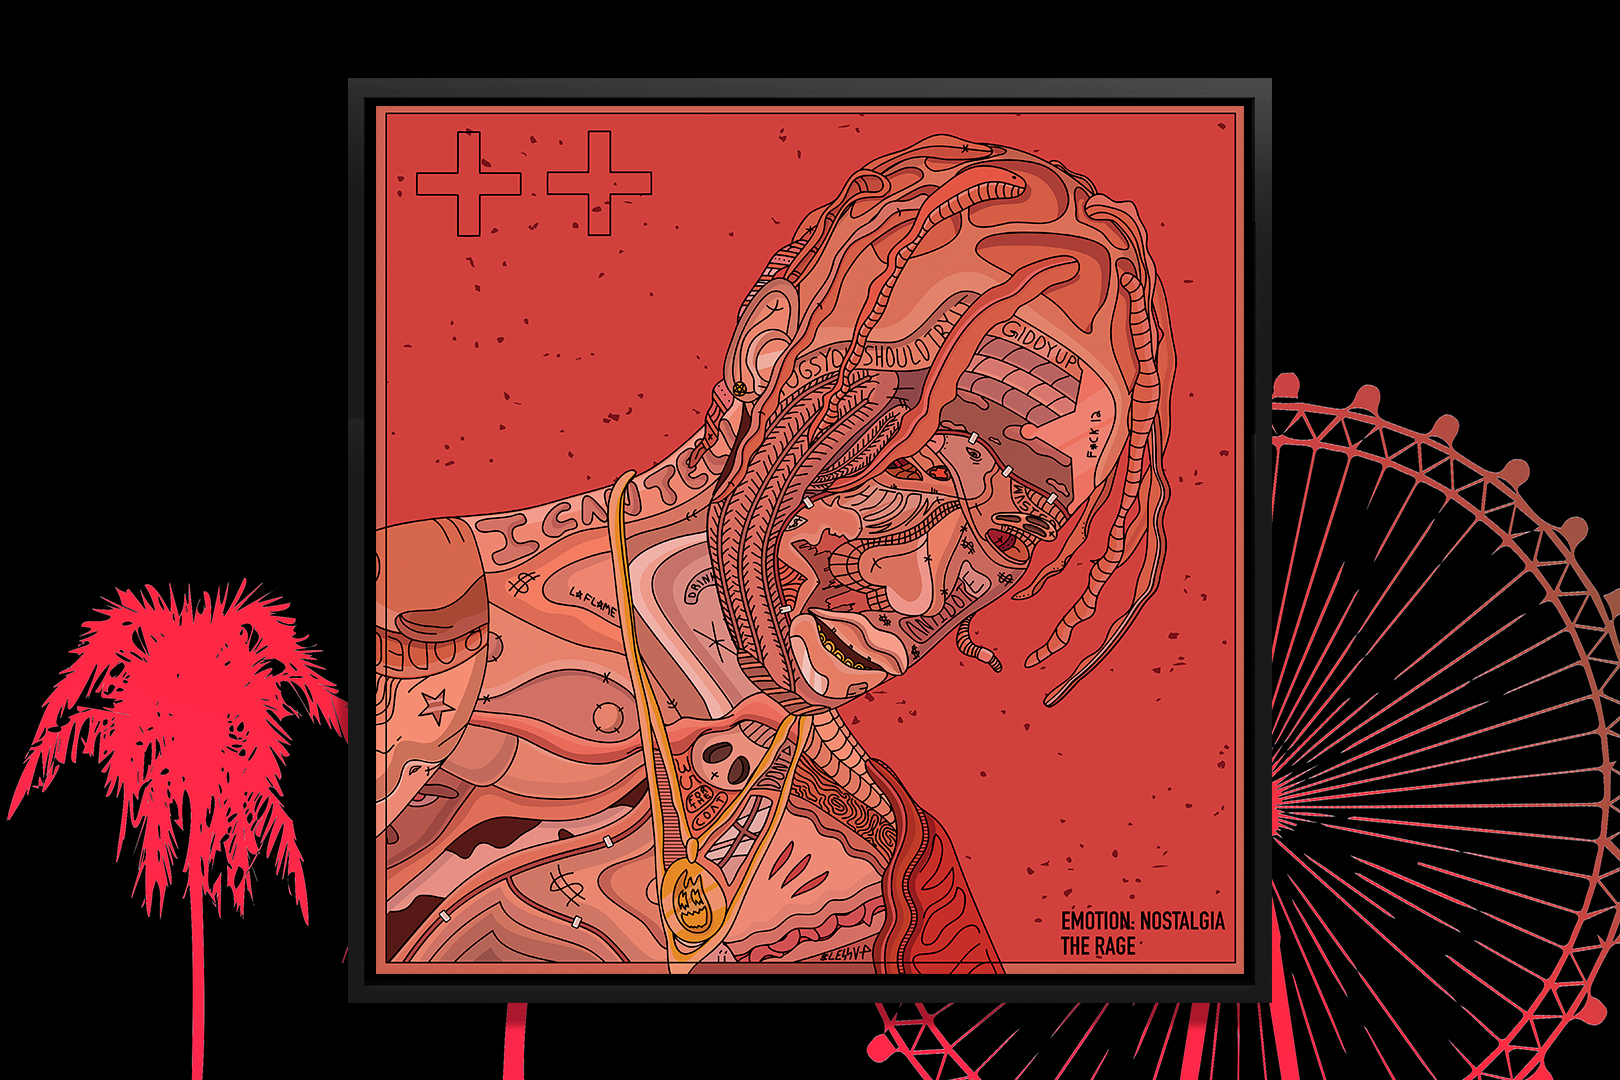 """""""The Rage"""" by Edo shows a red portrait of musician Travis Scott comprised of various shapes and symbols."""